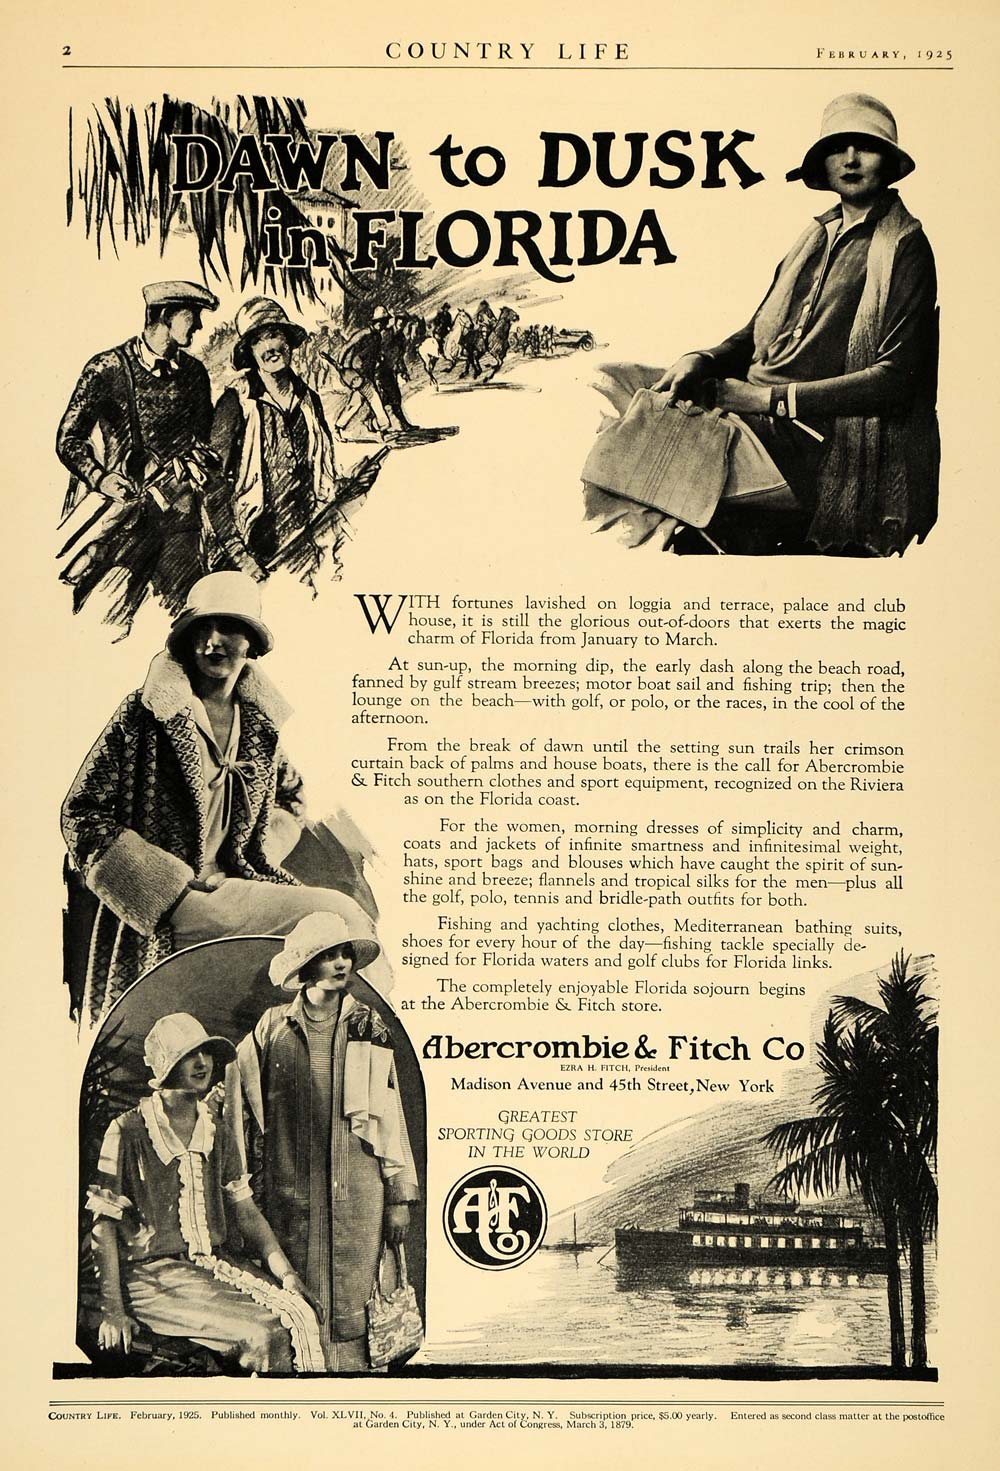 1925 Ad Abercrombie Fitch Sporting Good Apparel Florida - ORIGINAL CL6